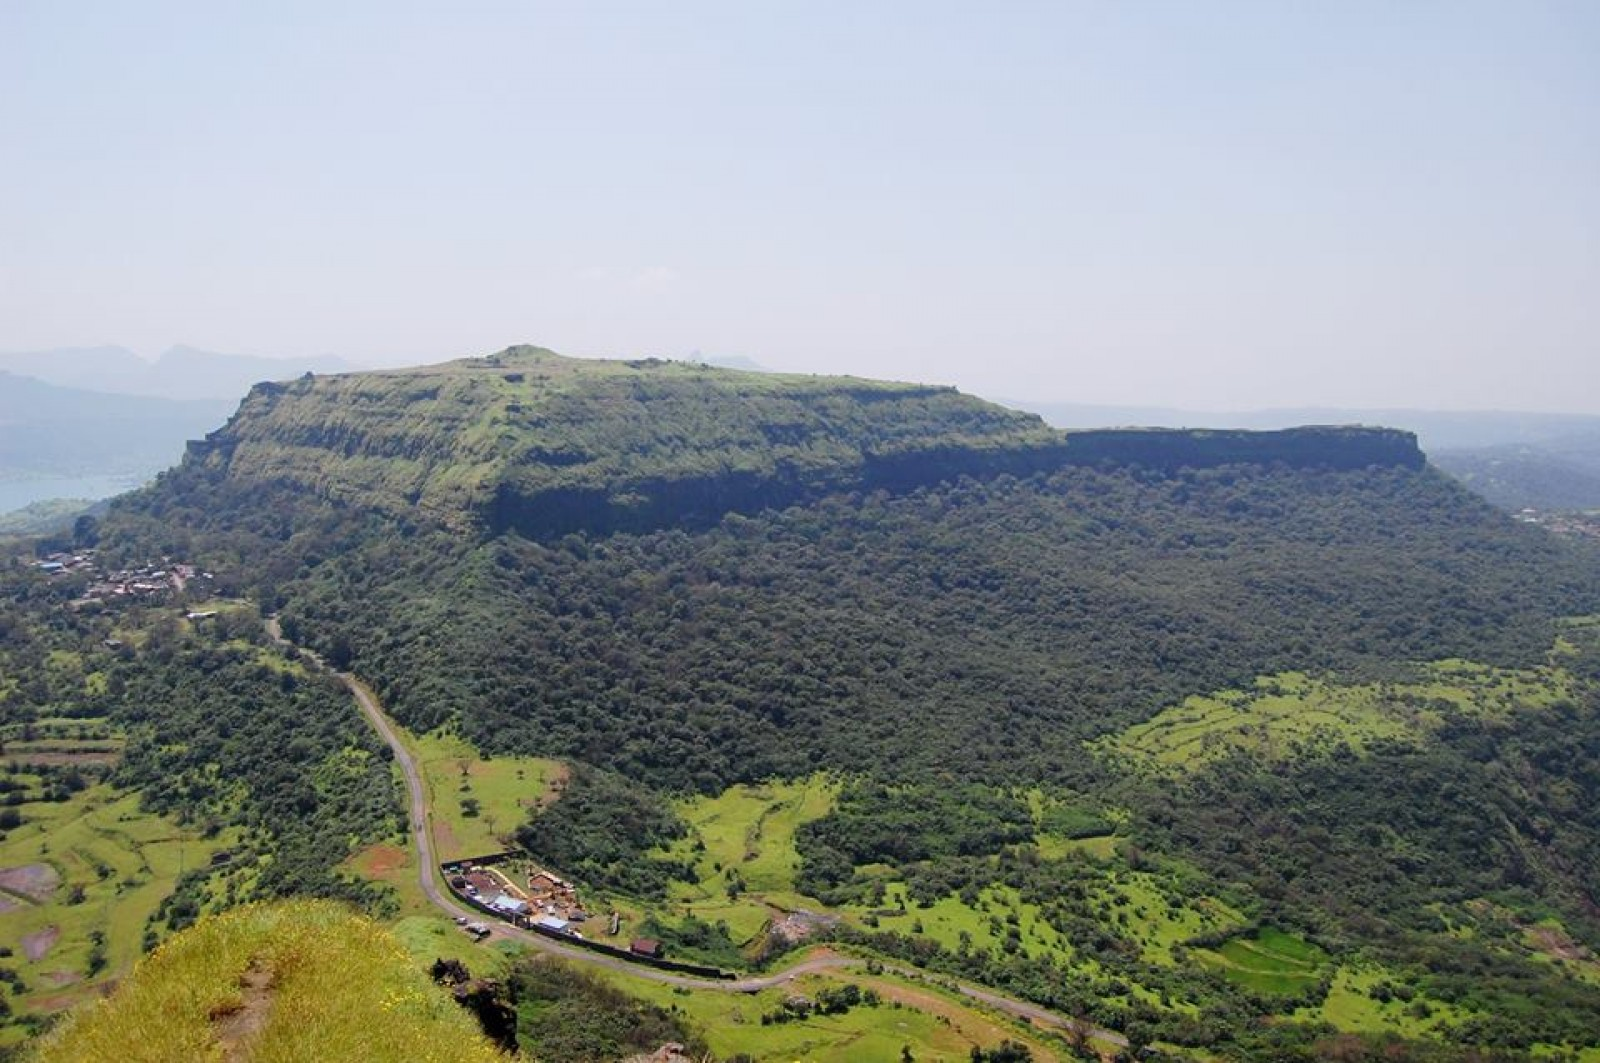 Trekking Visapur Fort Maharashtra Adventure Travel The Great Next